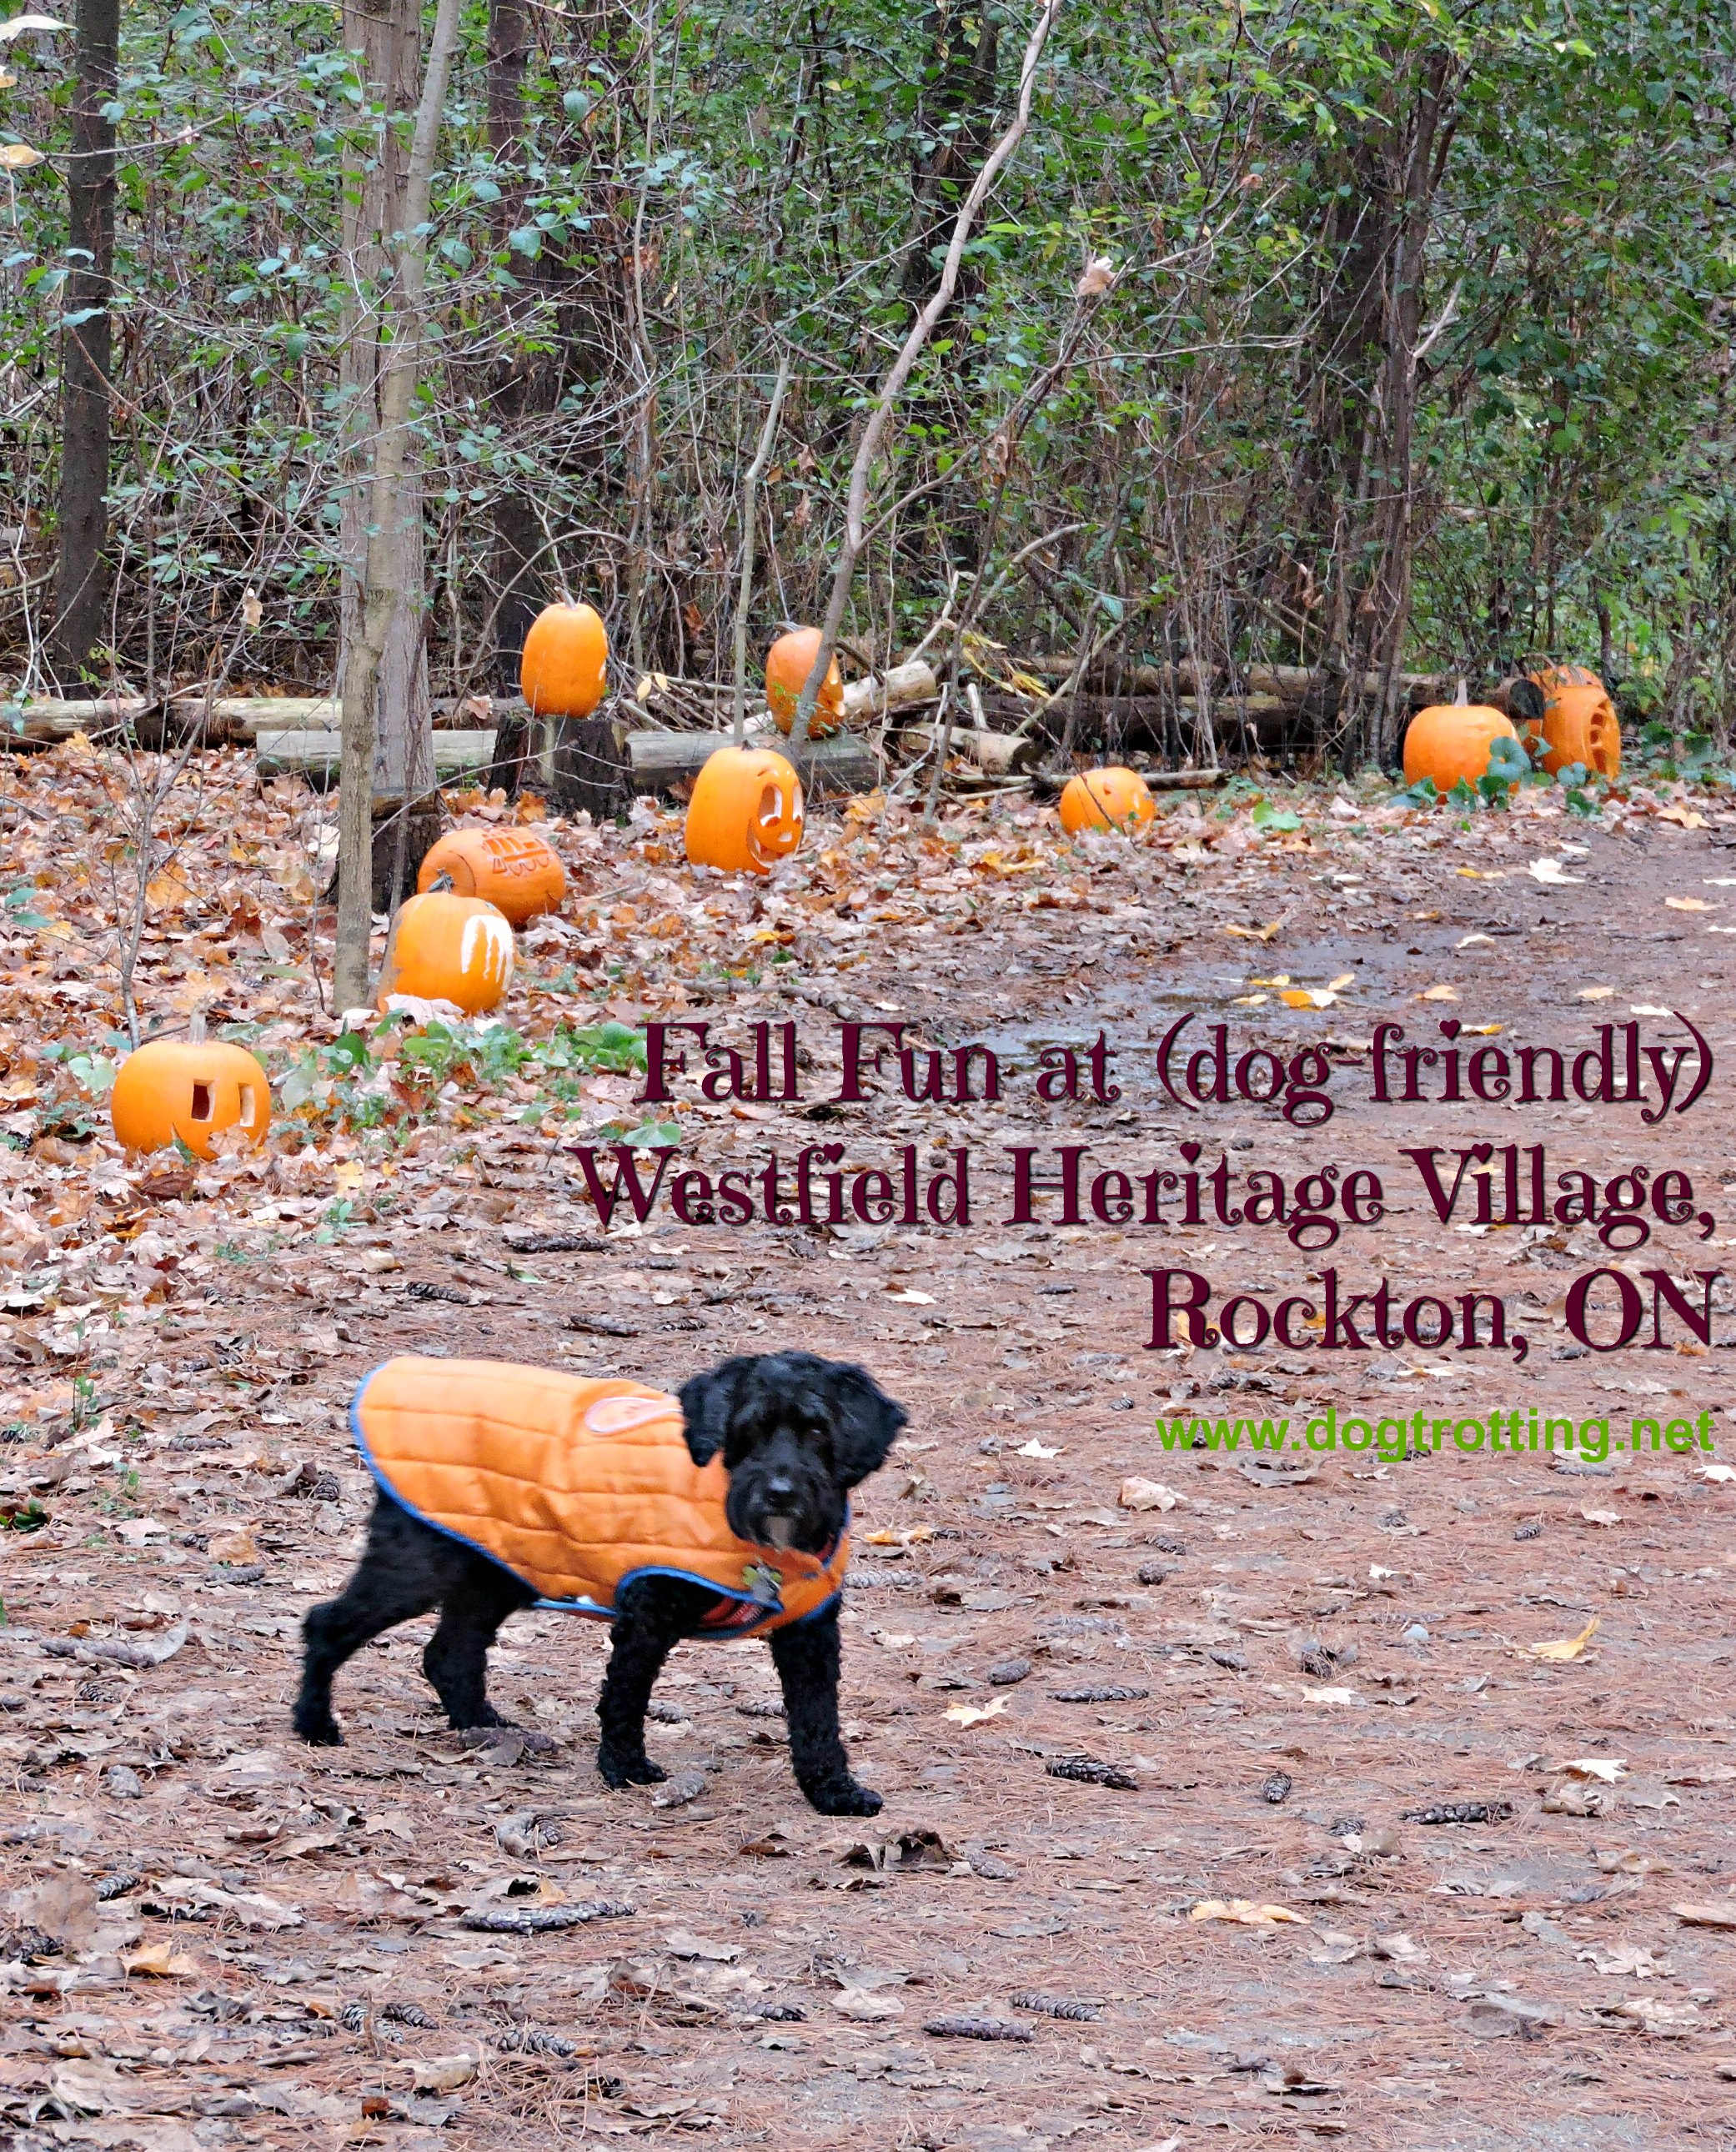 Travel Rockton, ON: Westfield Heritage Village … bring the dog (and a snack)